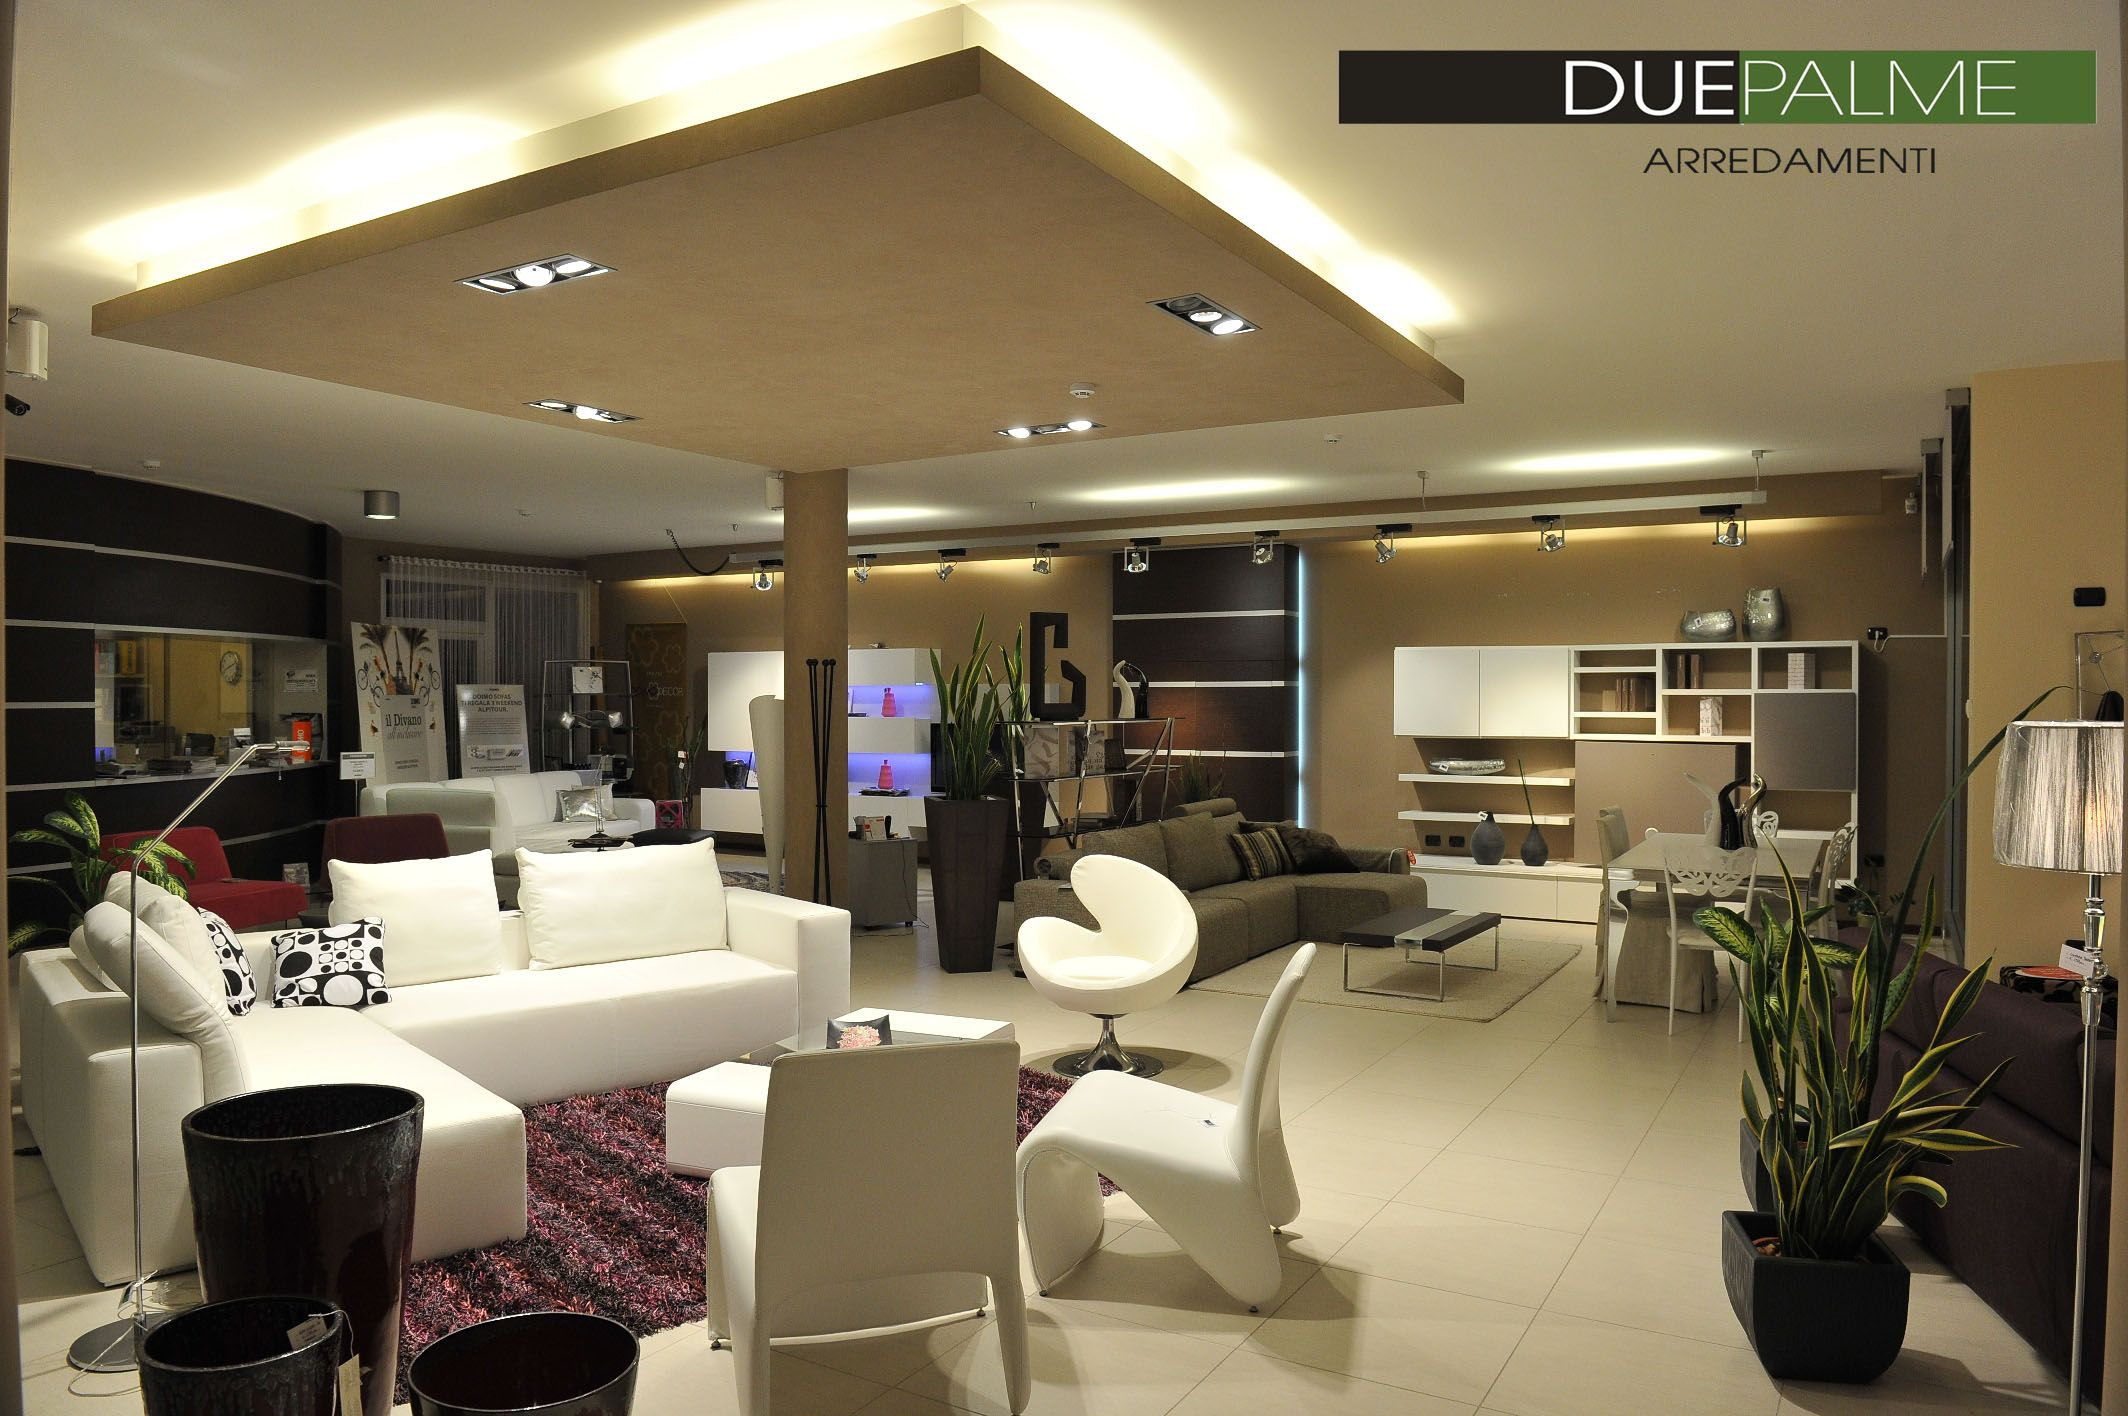 Awesome Due Palme Arredamenti Gallery - Design & Ideas 2018 ...